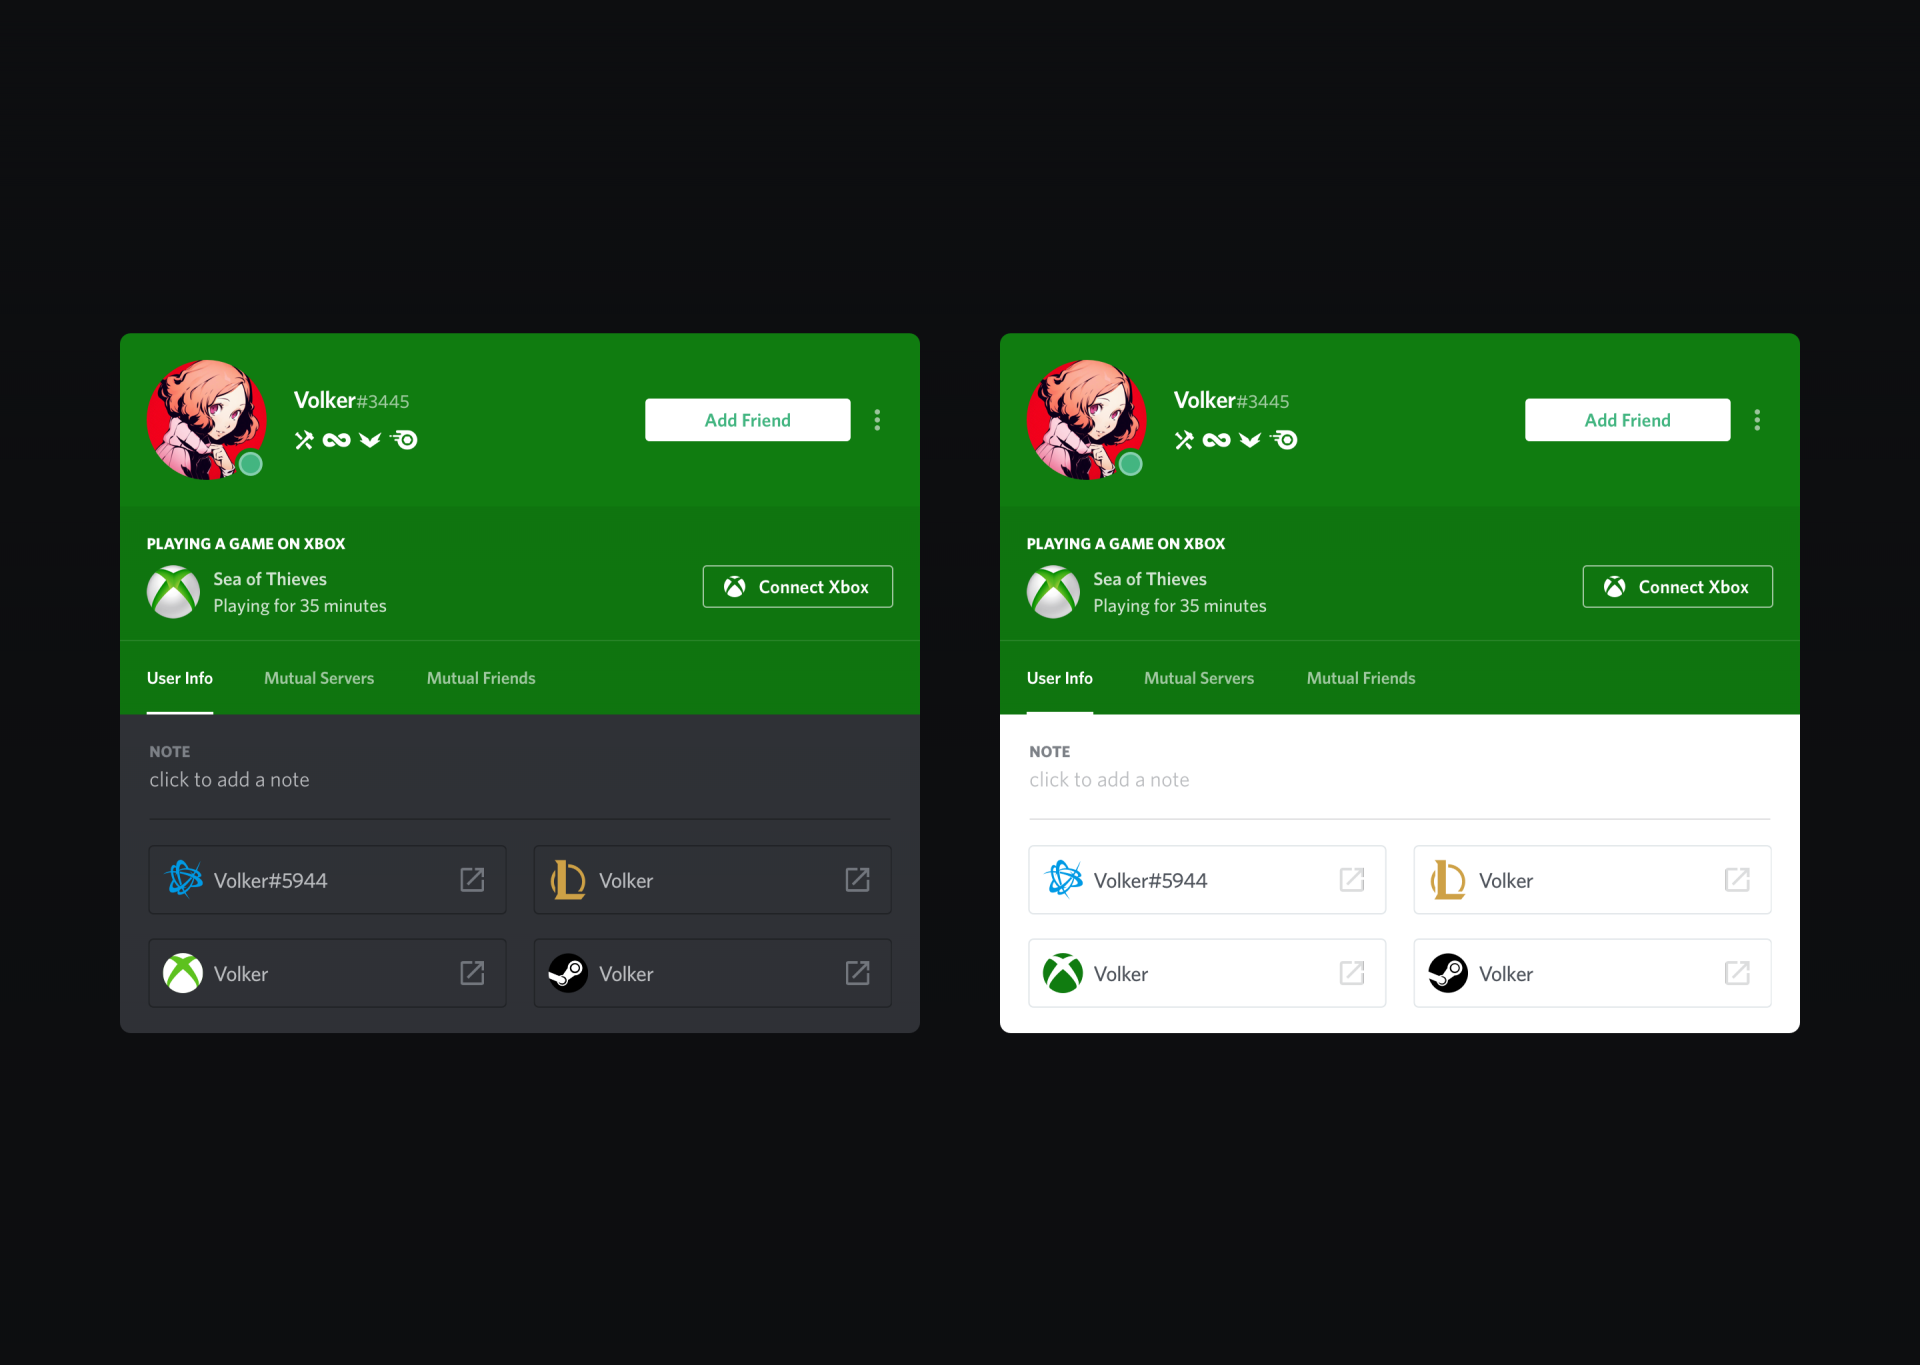 Microsoft announces xbox collaboration with discord to connect accounts - onmsft. Com - april 24, 2018